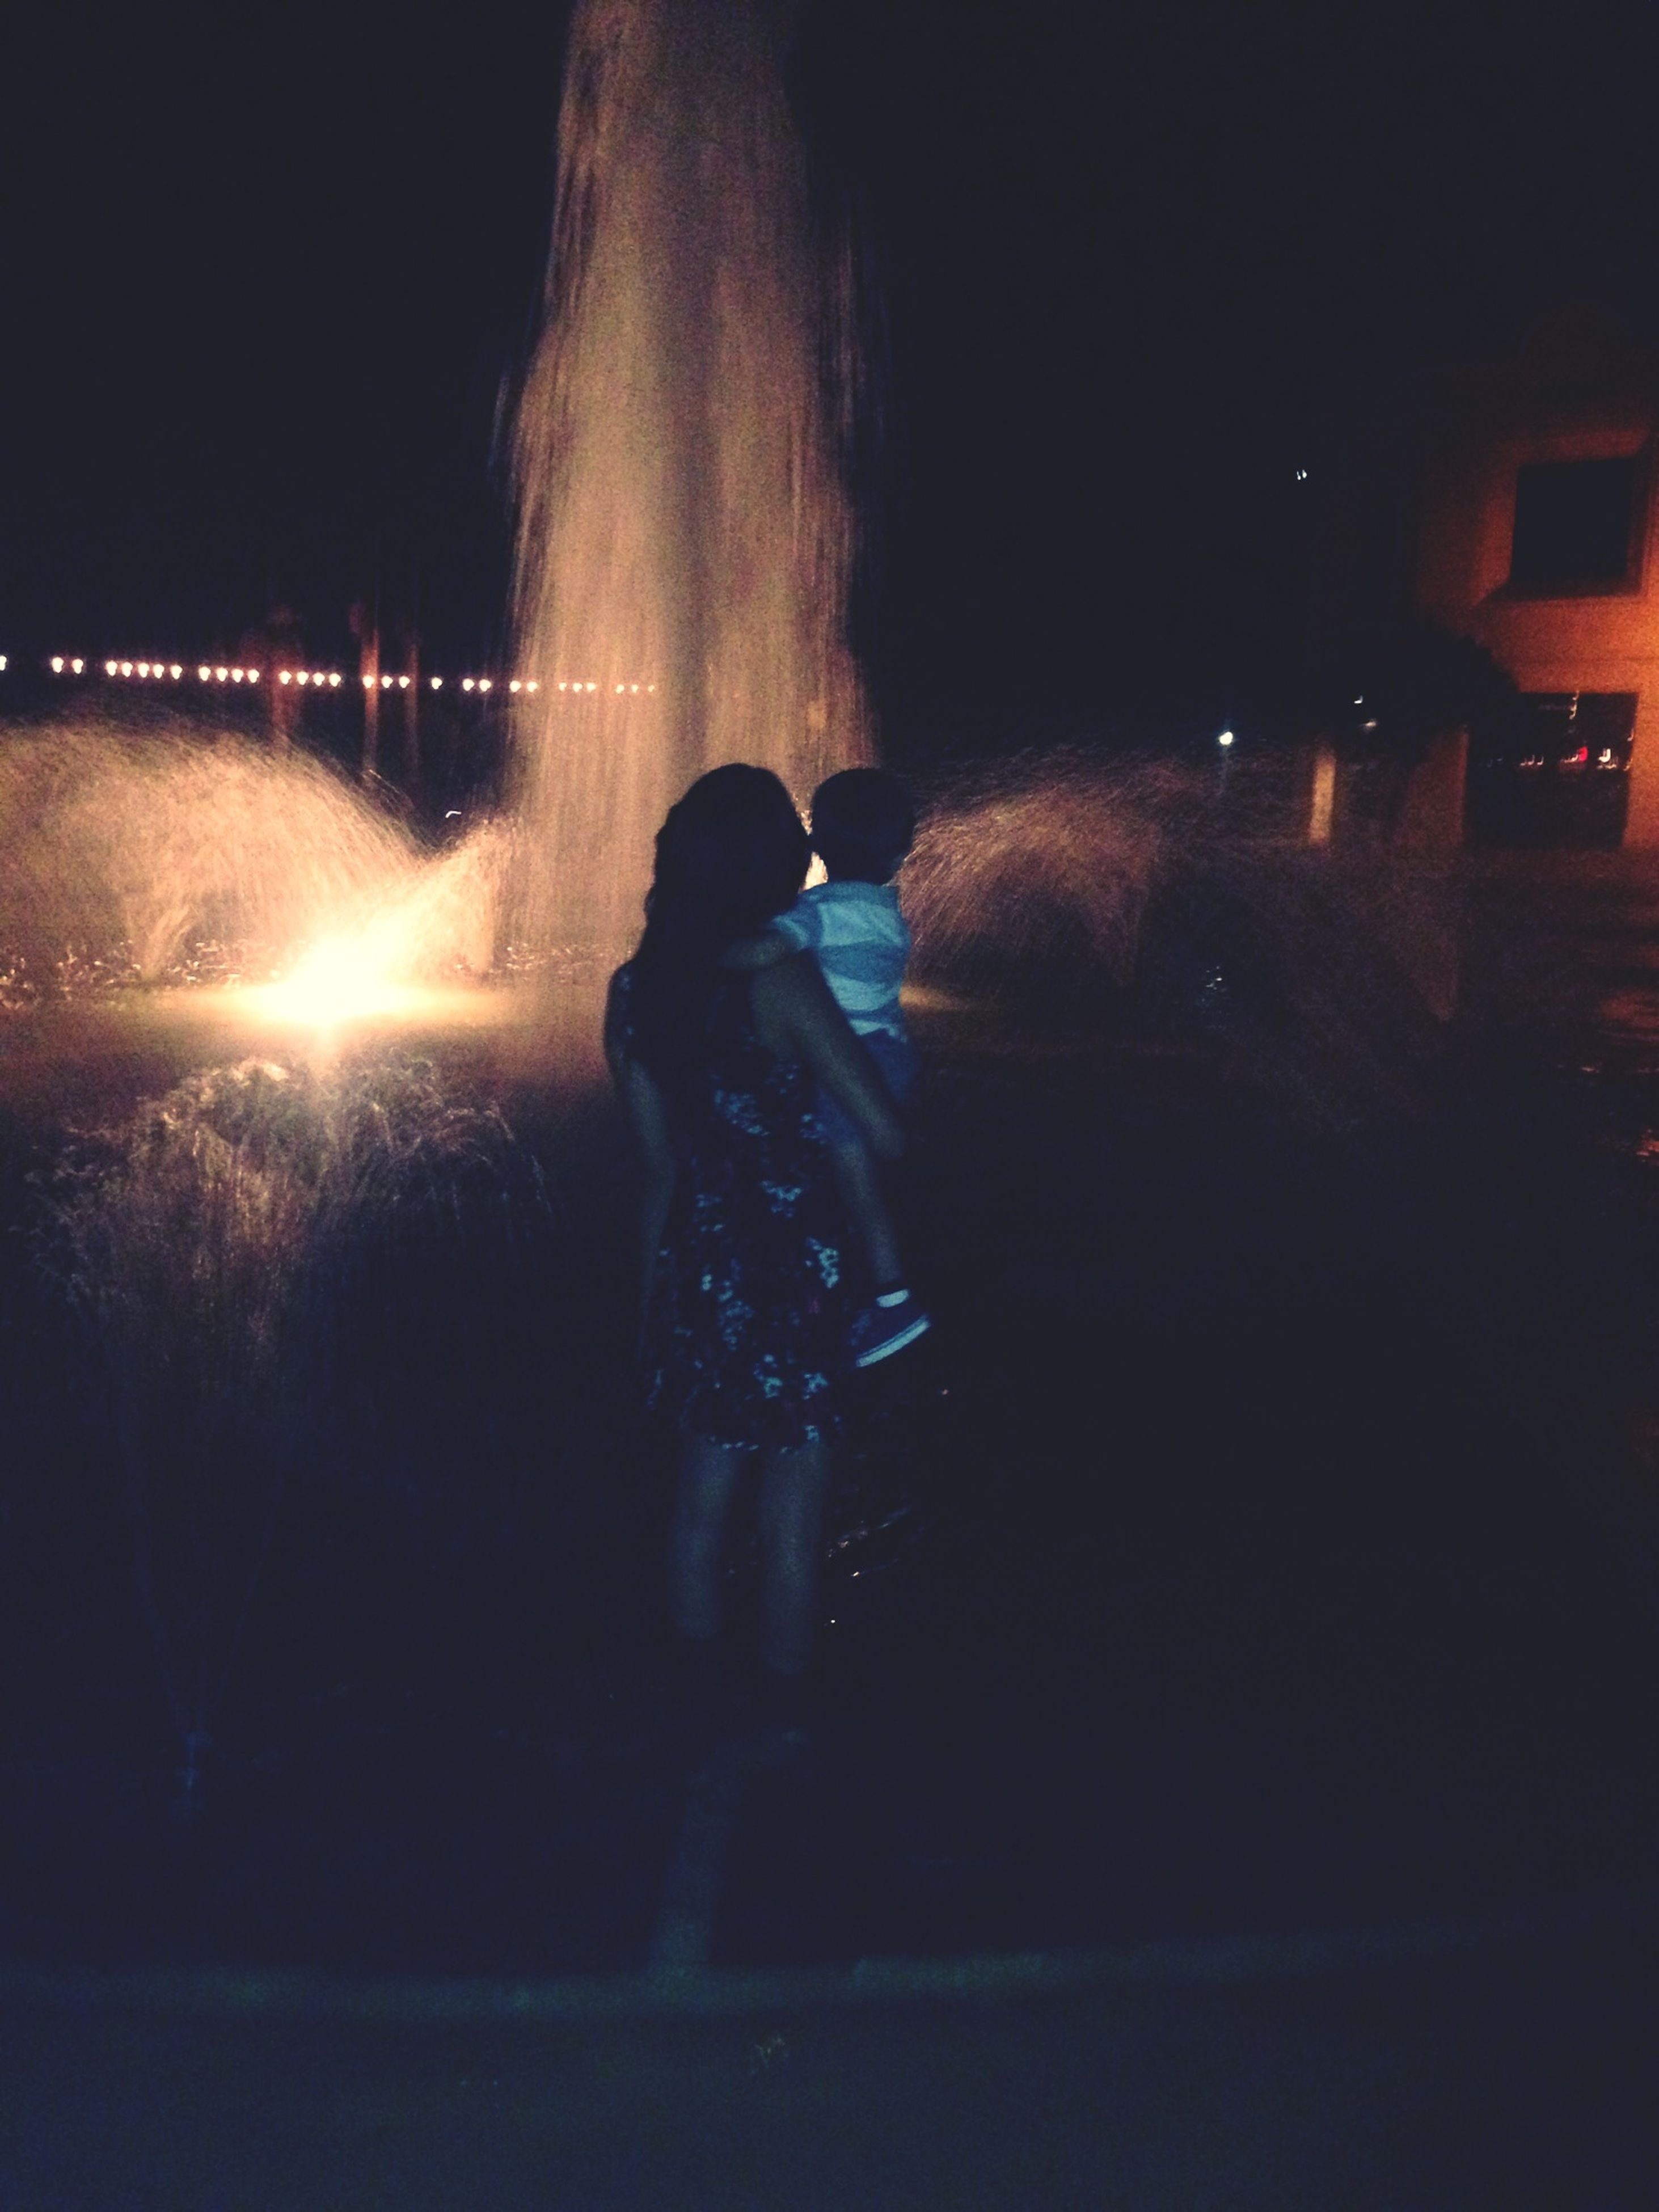 lifestyles, full length, leisure activity, rear view, standing, night, men, illuminated, casual clothing, silhouette, person, walking, water, outdoors, three quarter length, sunlight, built structure